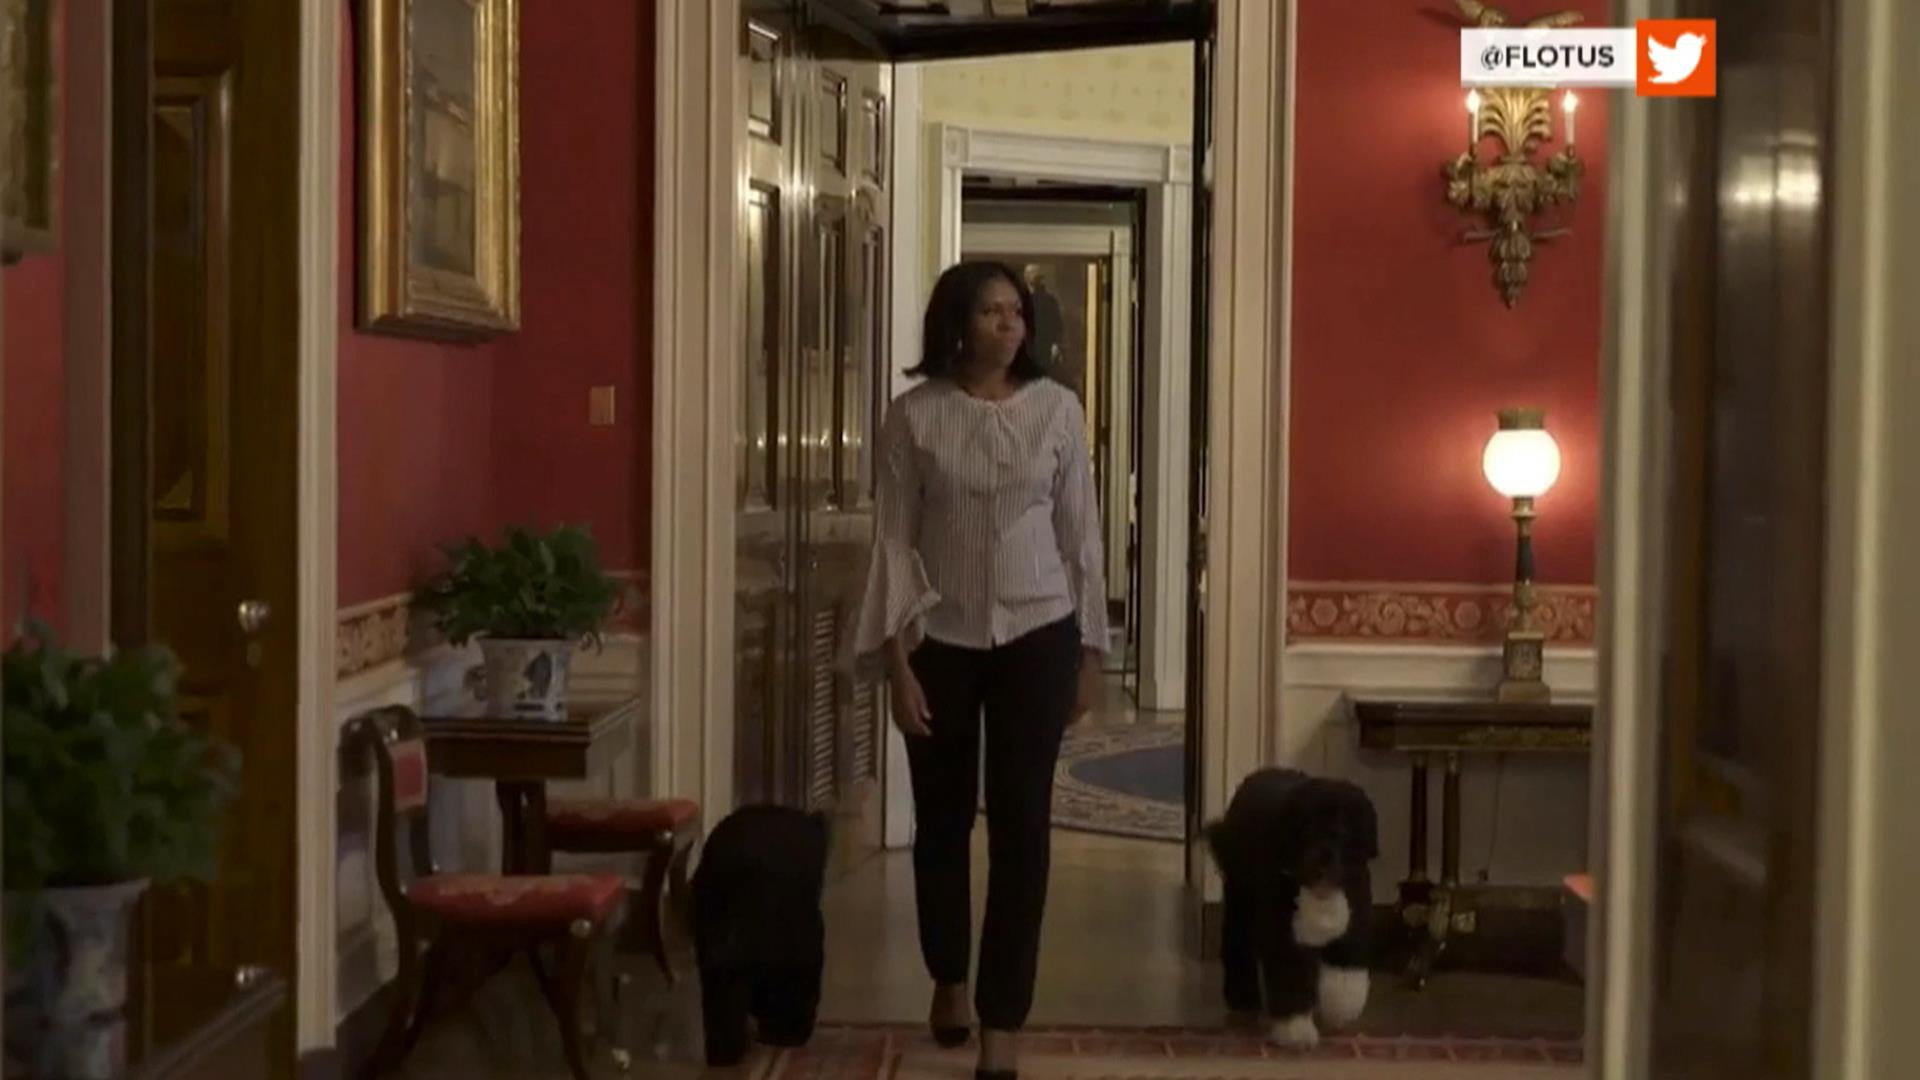 Michelle Obama Bids Farewell Posts Video Of Herself With Sunny And Bo